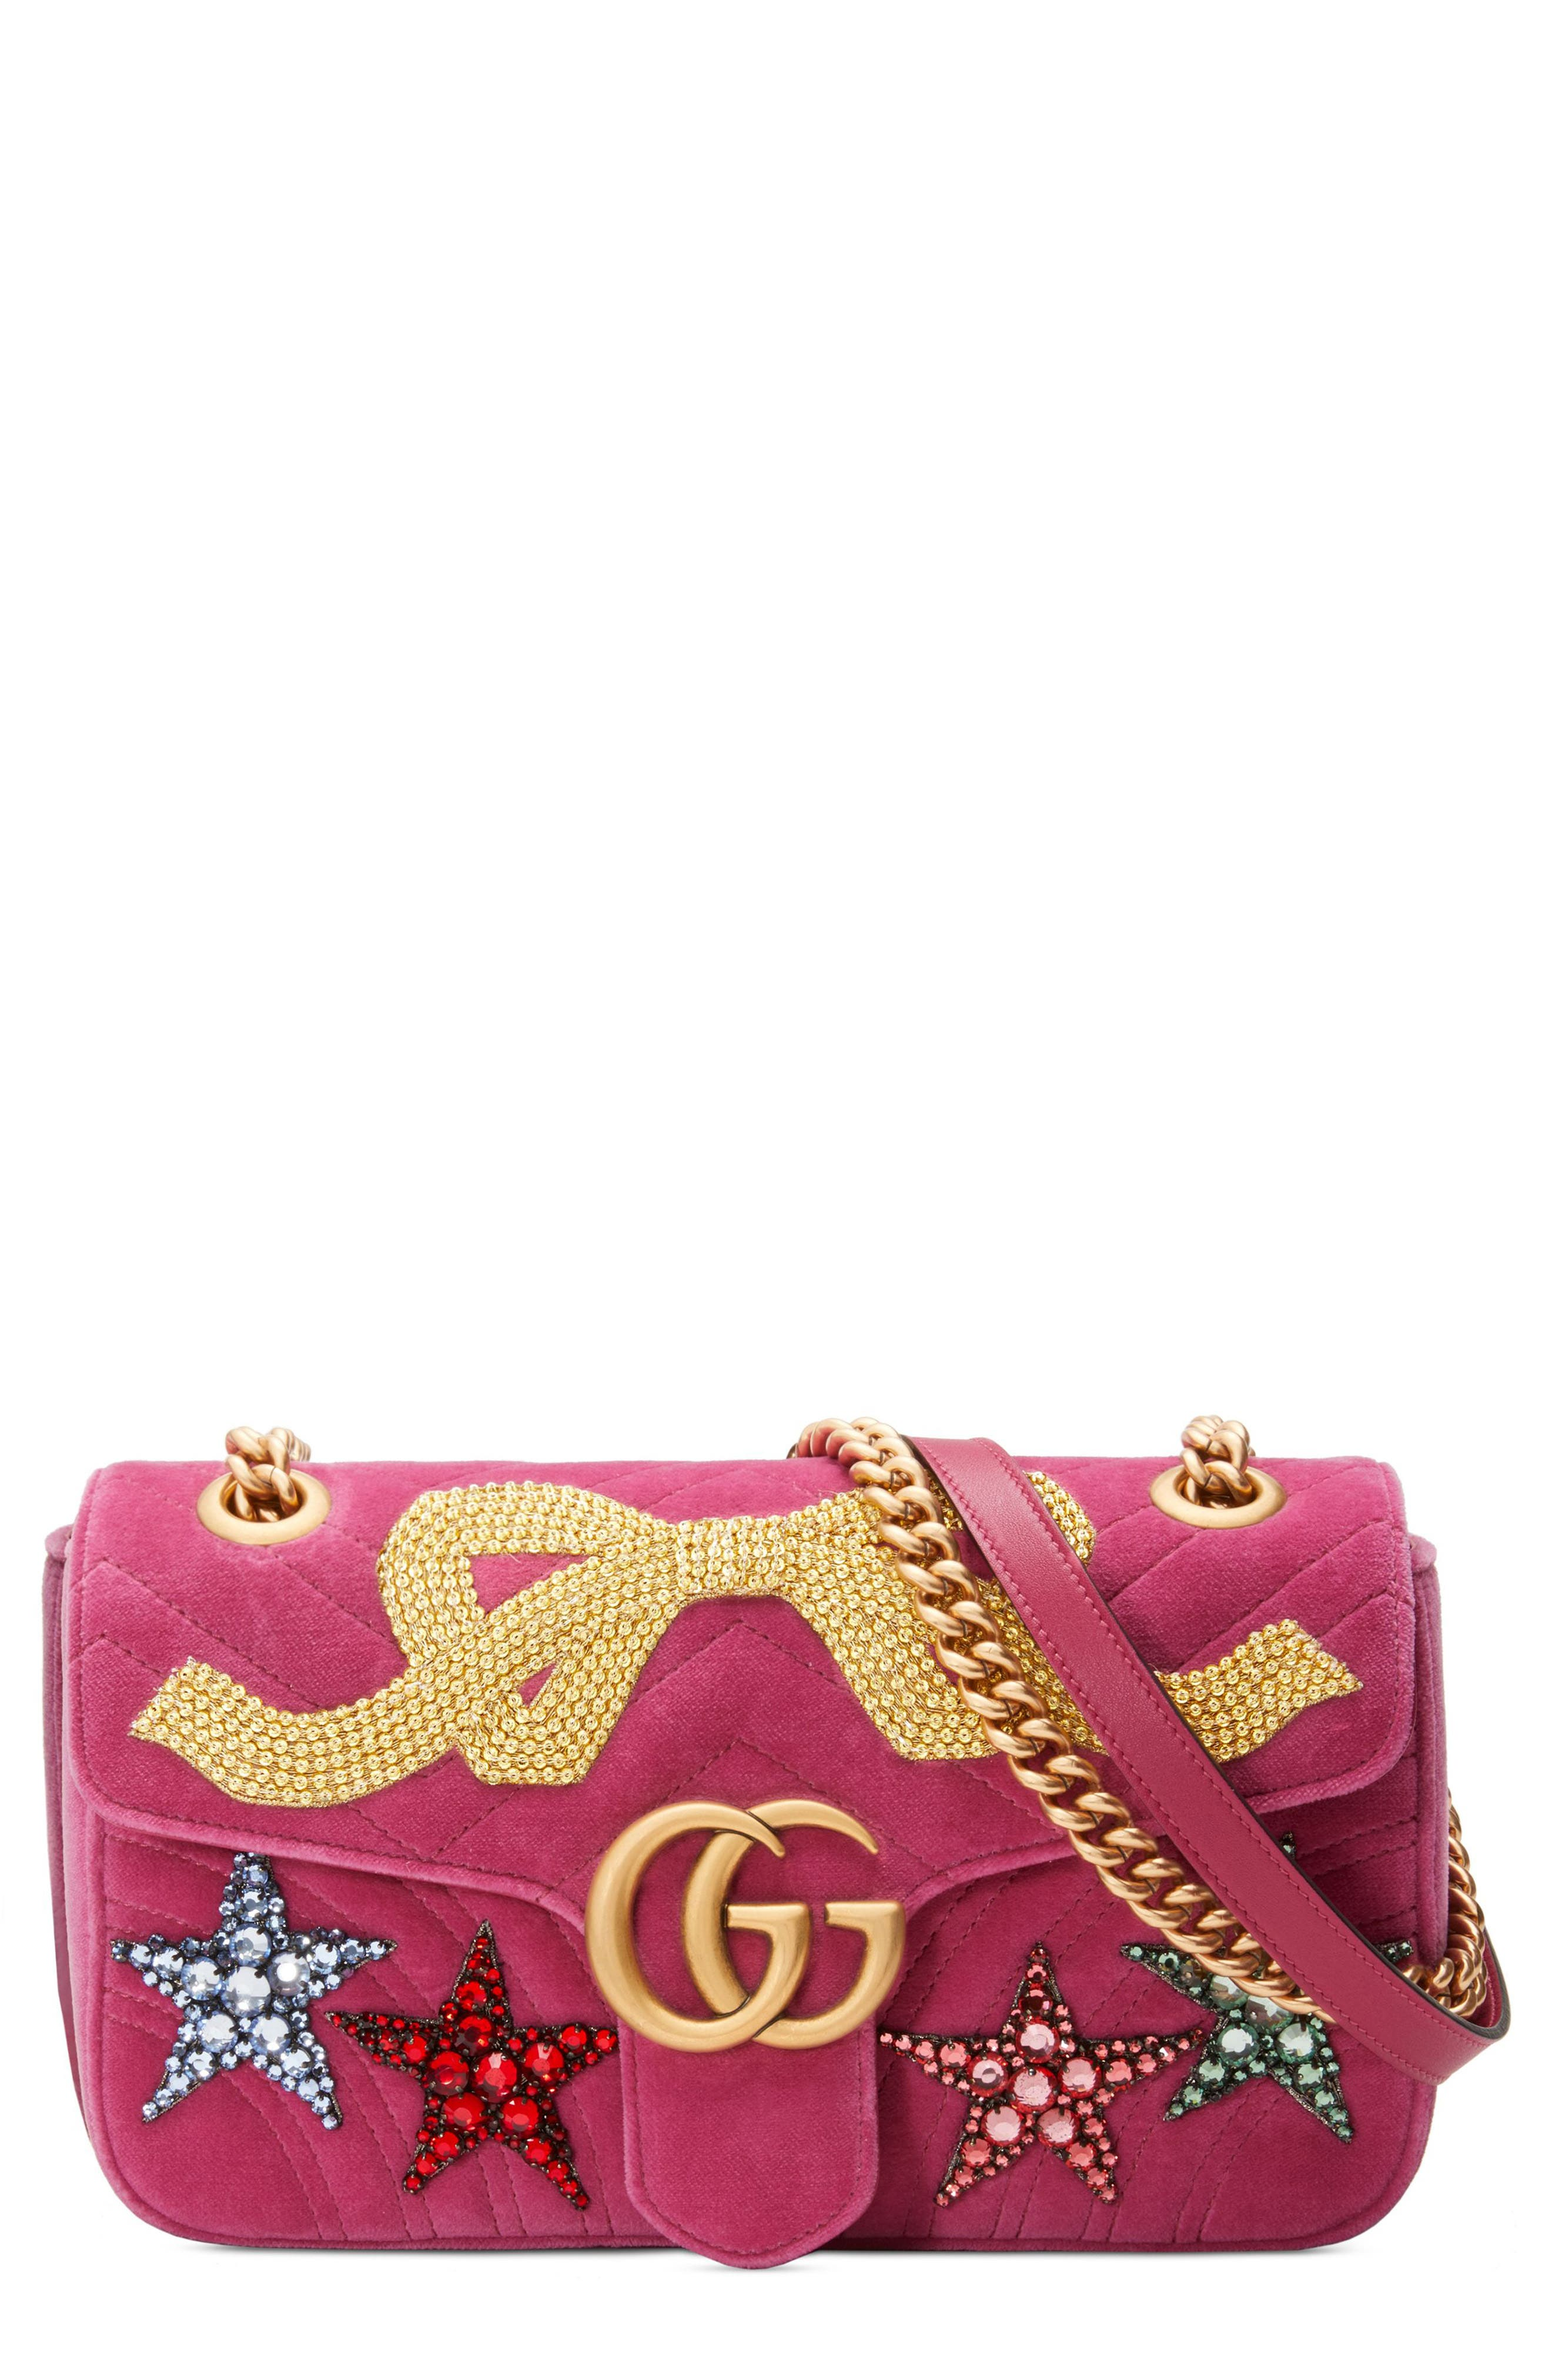 Small GG Marmont 2.0 Matelassé Velvet Shoulder Bag,                         Main,                         color, Raspberry/ Raspberry Multi